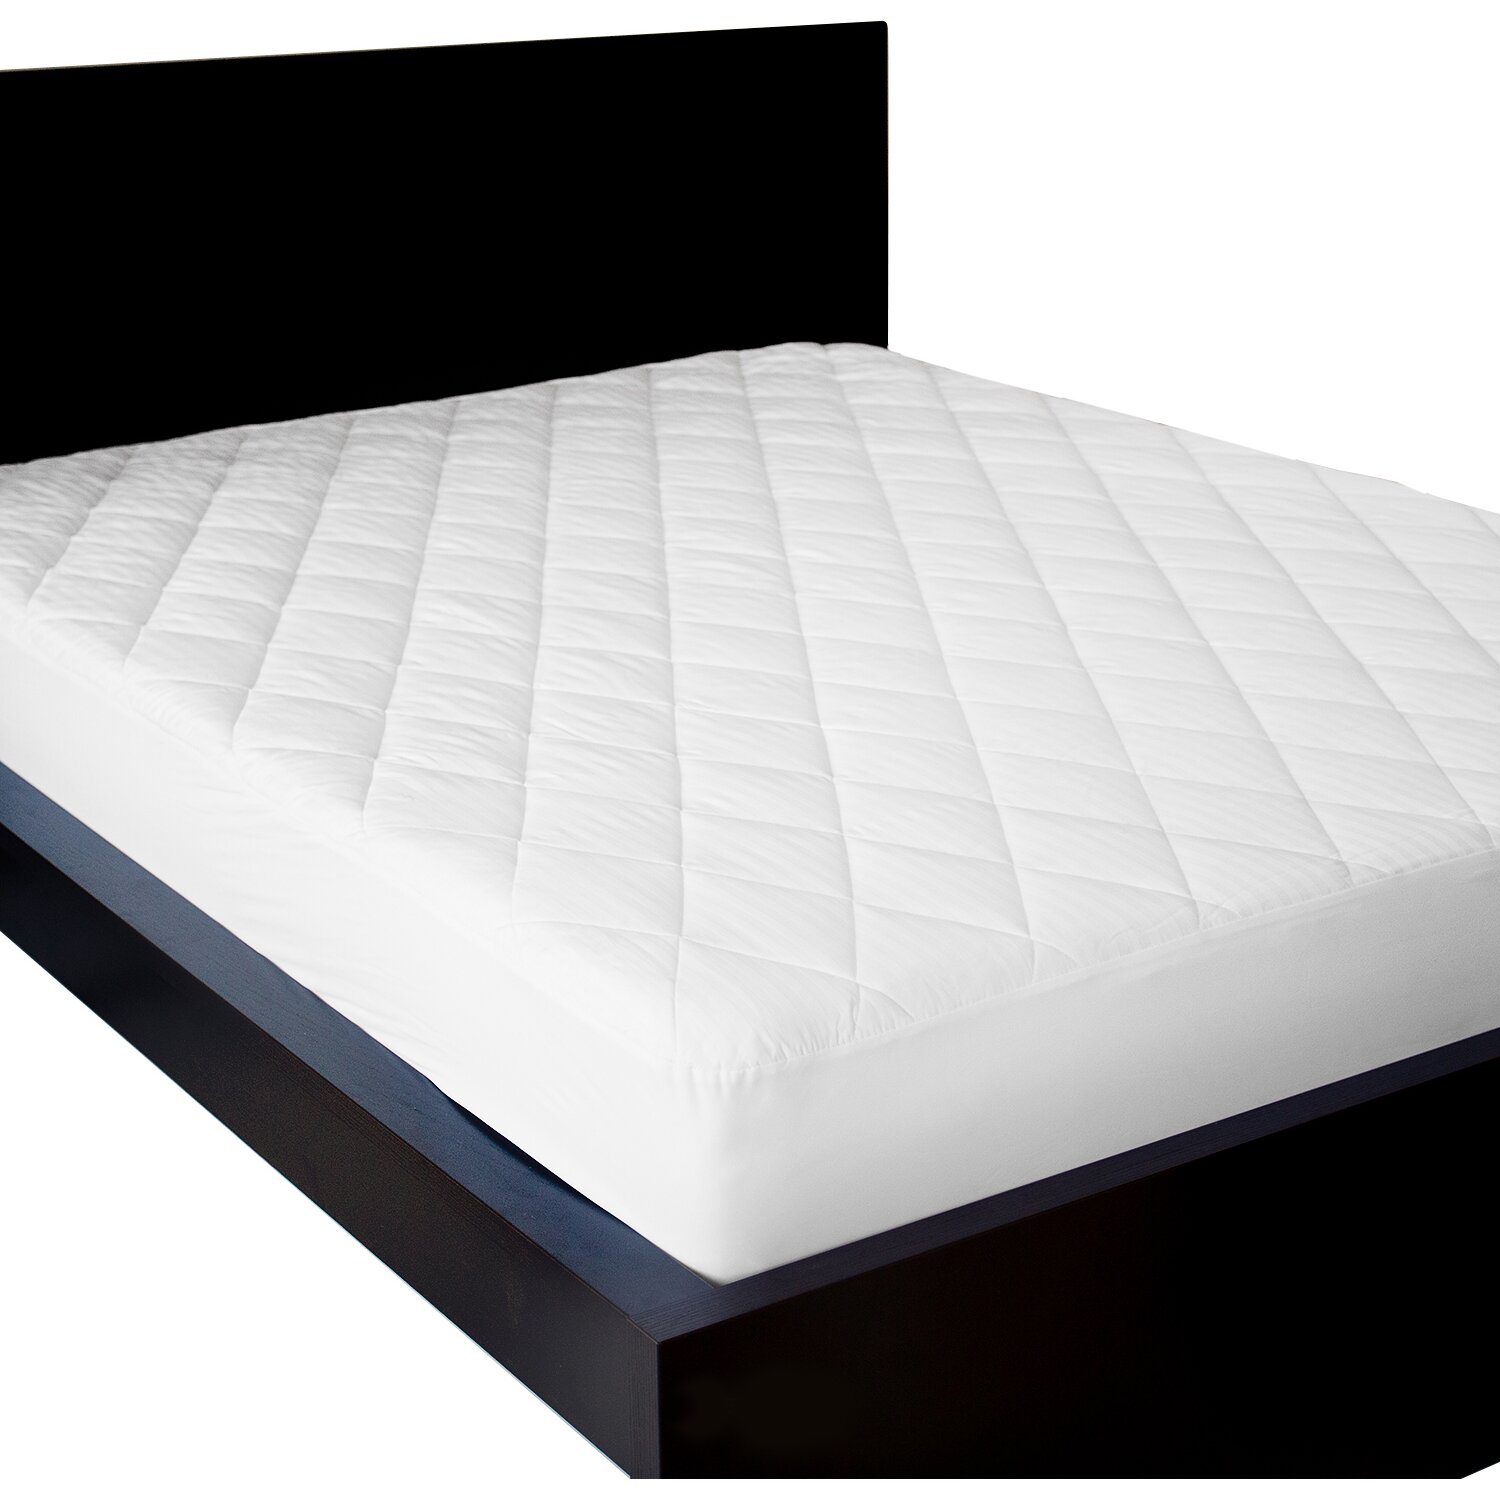 Malouf Down Alternative Mattress Pad Amp Reviews Wayfair